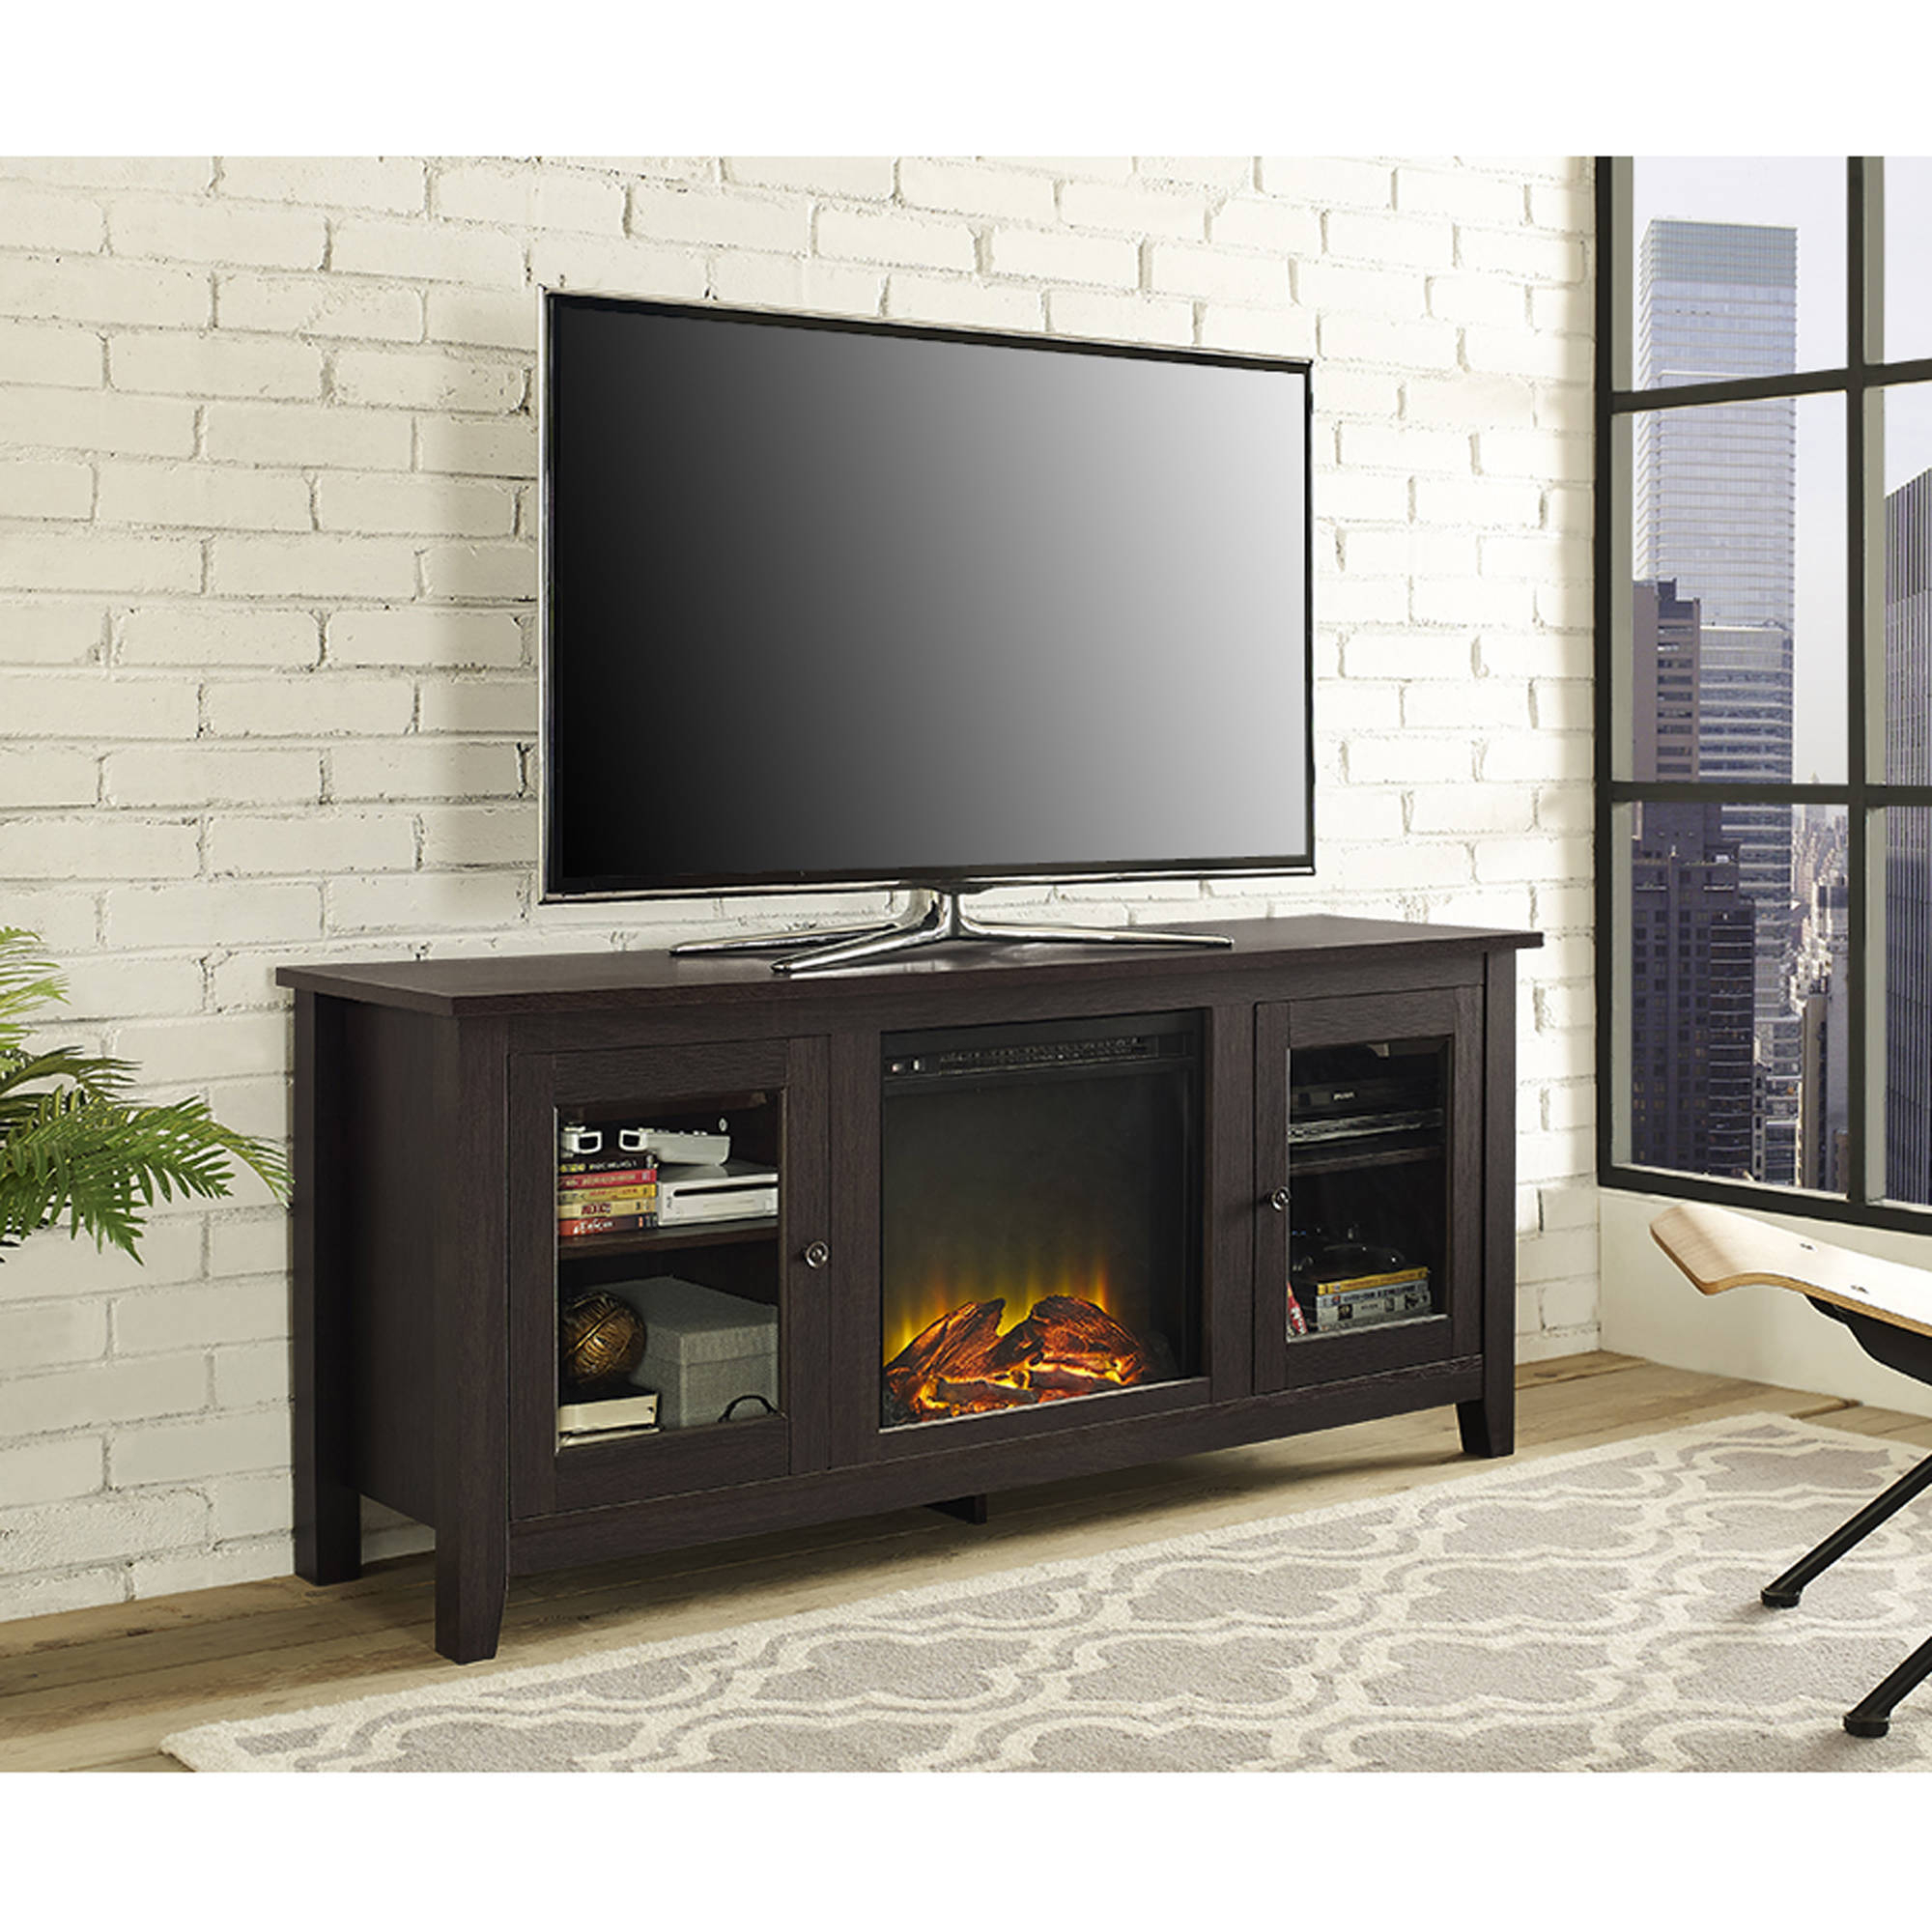 24 Inch Wide Tv Stands With Favorite Tv Stands & Entertainment Centers – Walmart (View 5 of 20)